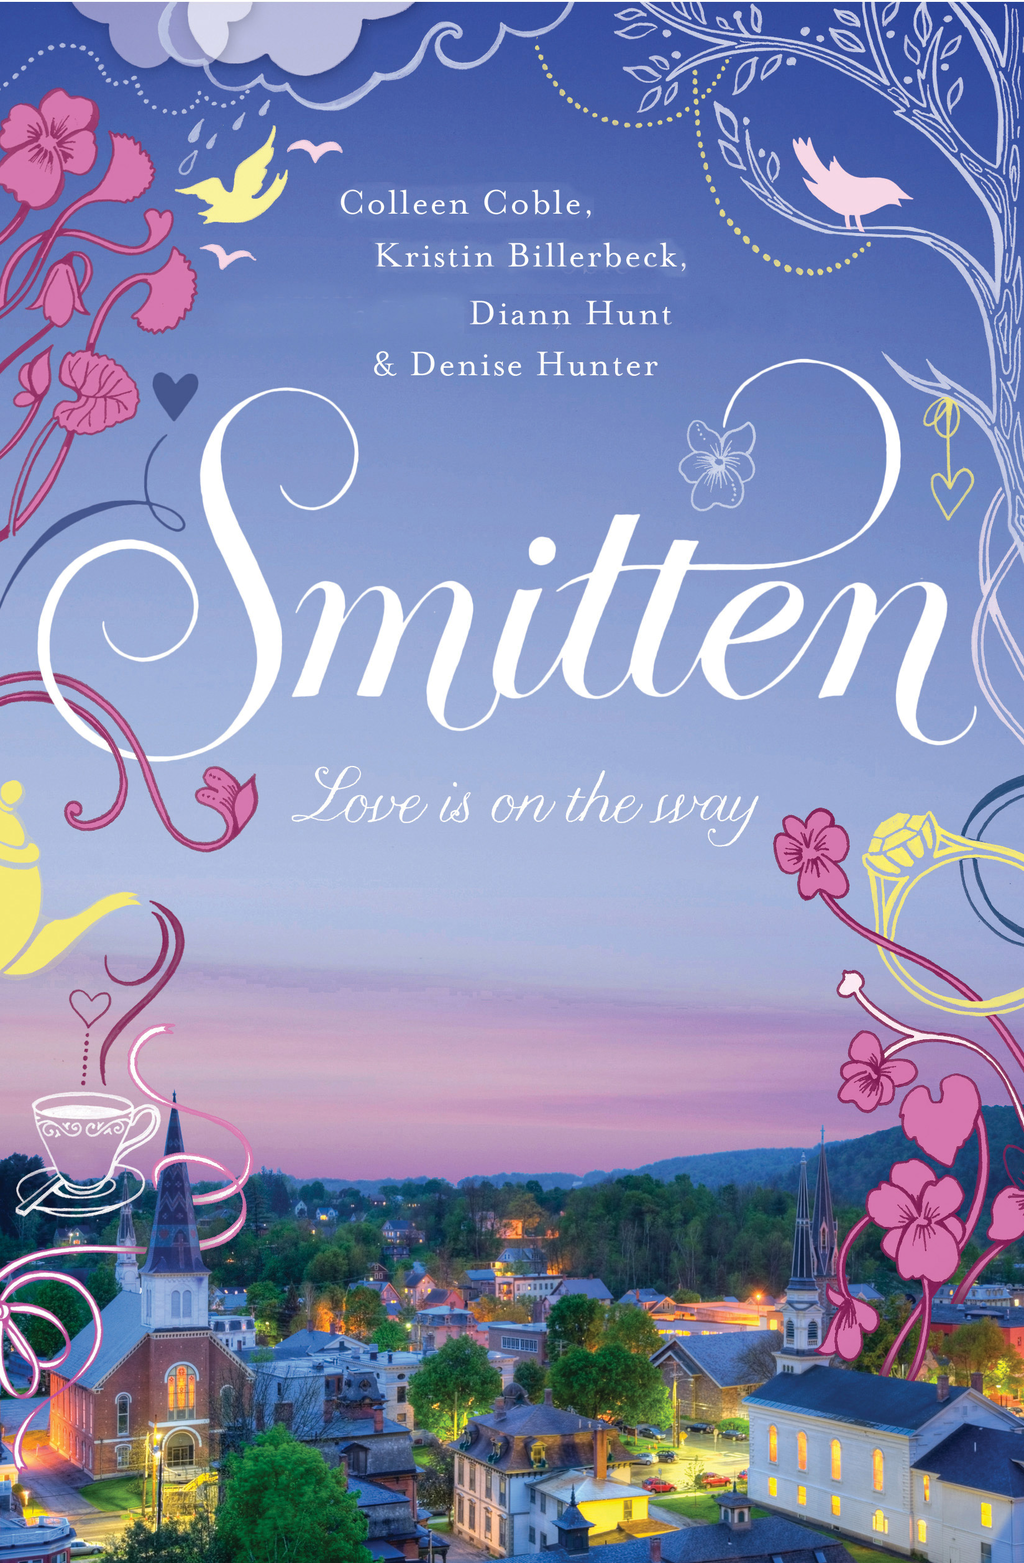 Smitten By: Colleen Coble,Denise Hunter,Diann Hunt,Kristin Billerbeck